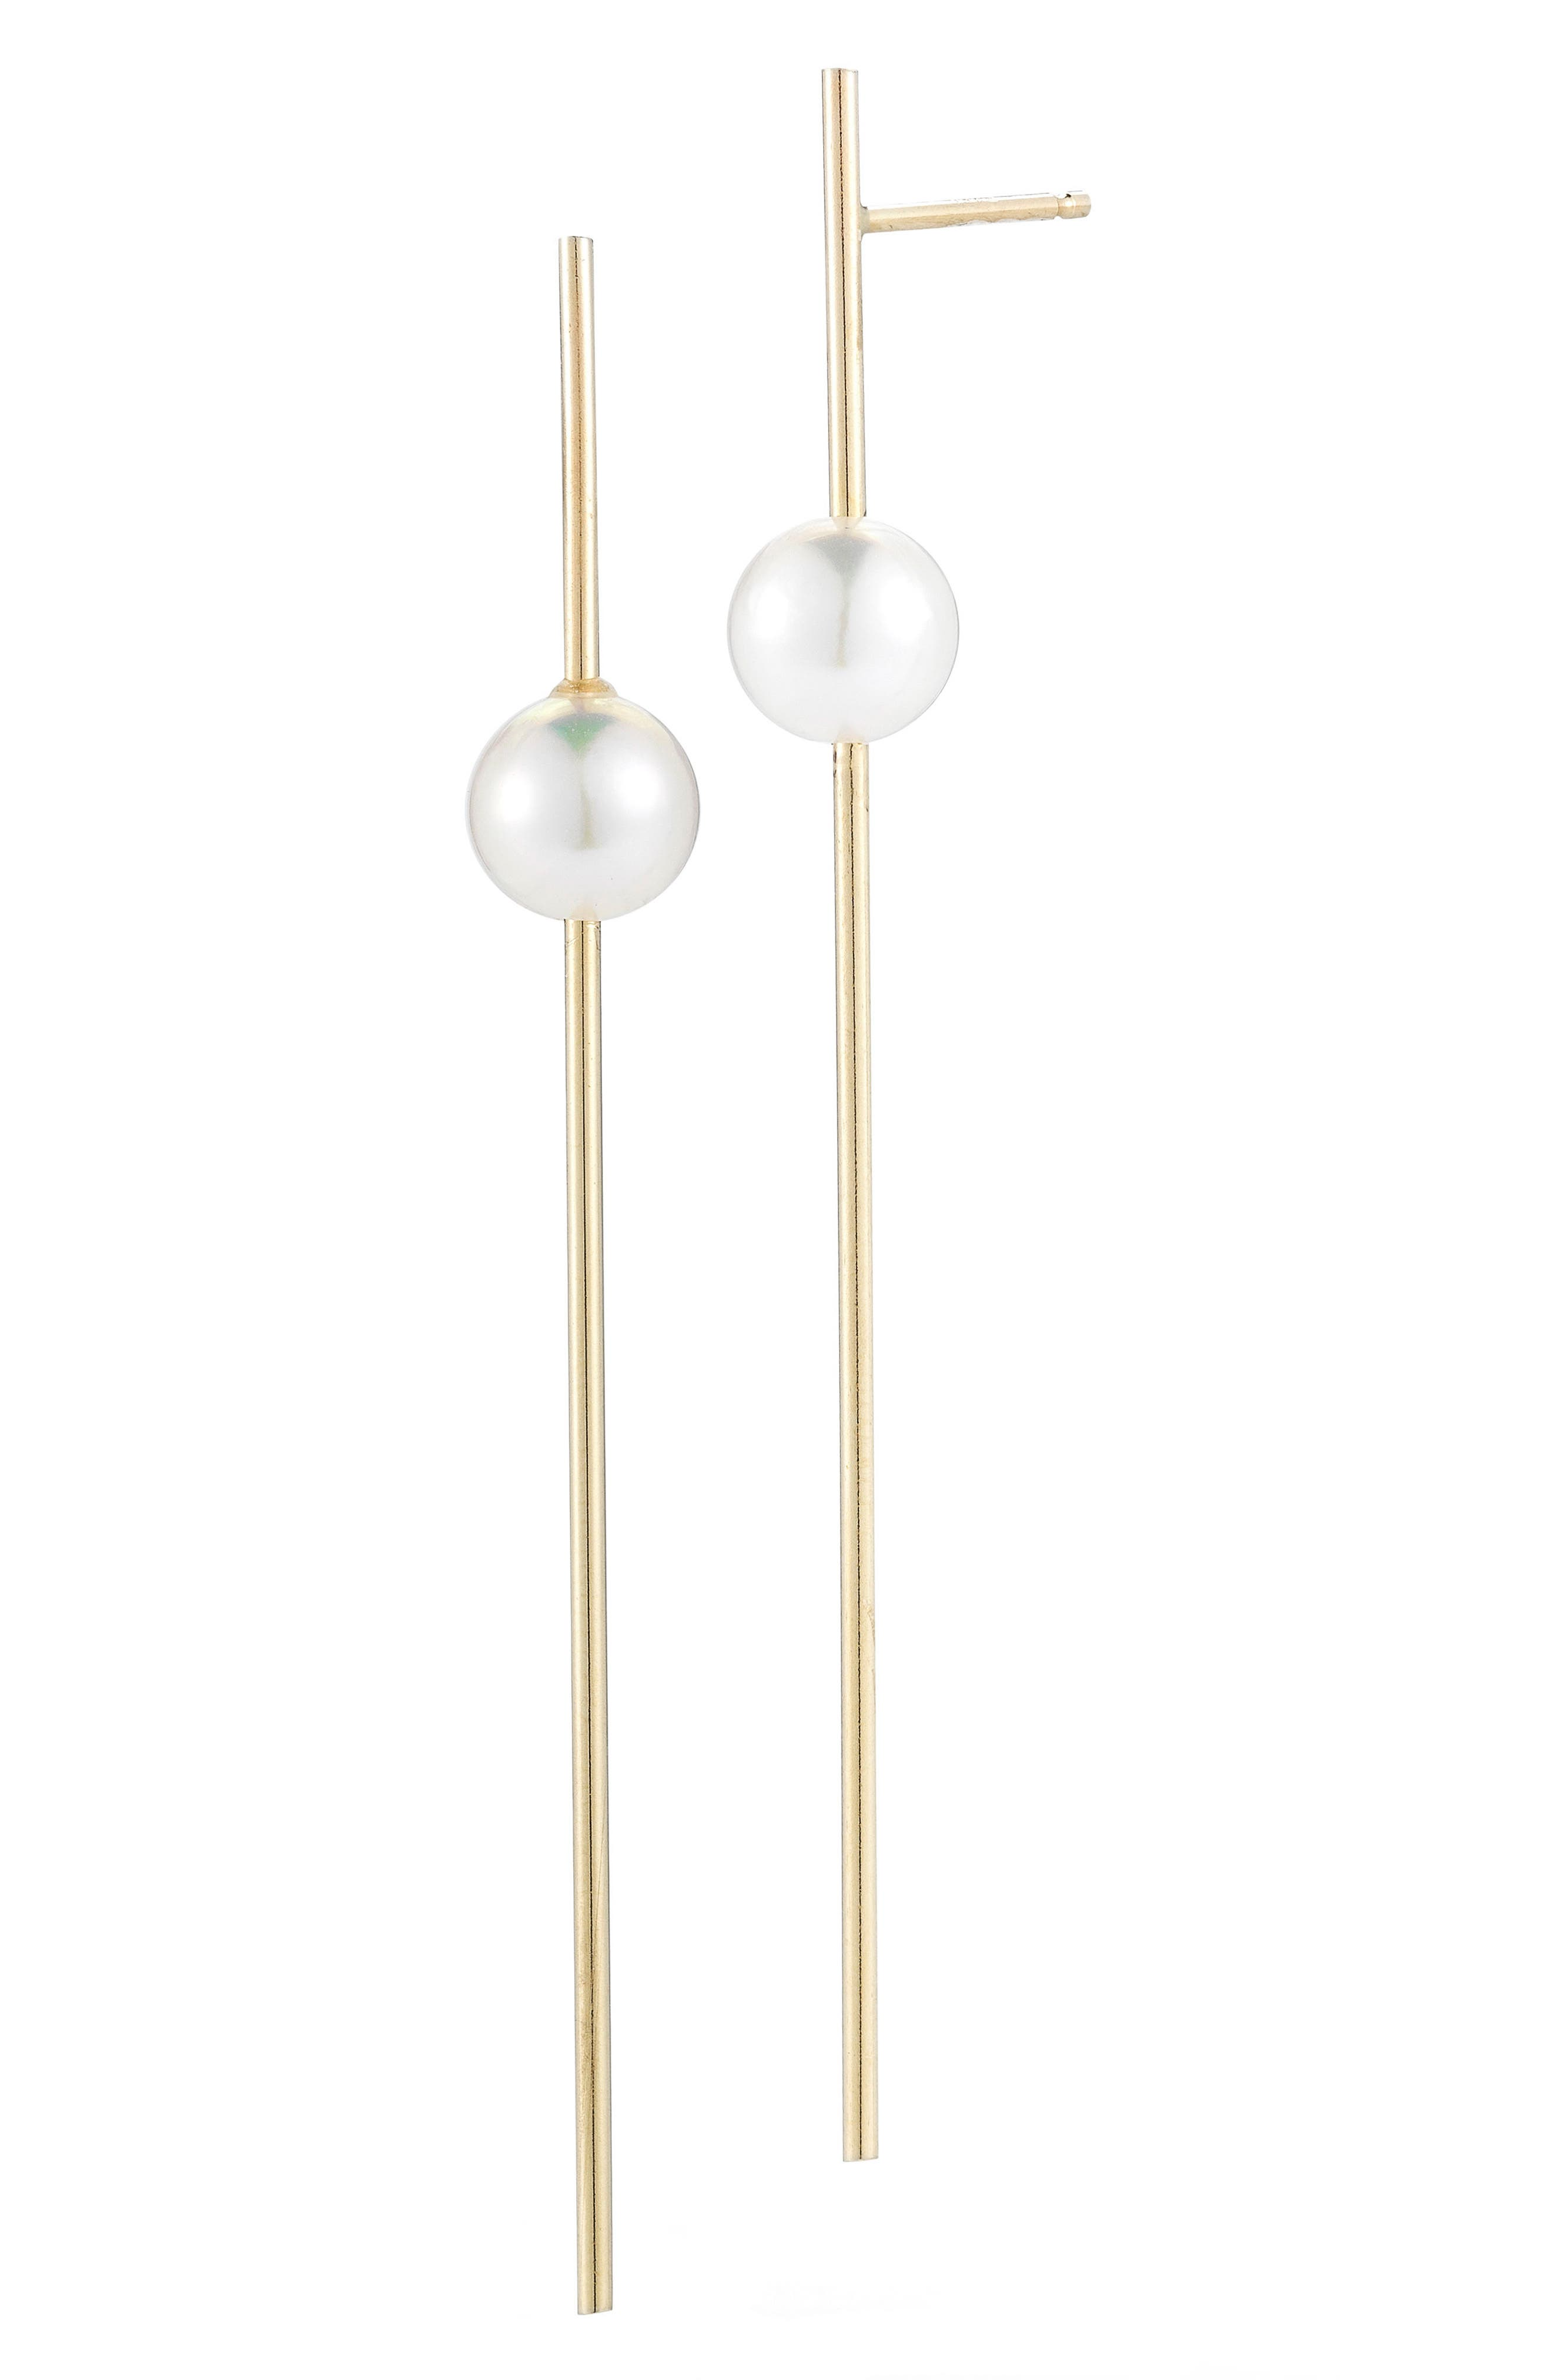 Sea of Beauty Linear Drop Pearl Earrings,                         Main,                         color, YELLOW GOLD/ WHITE PEARL